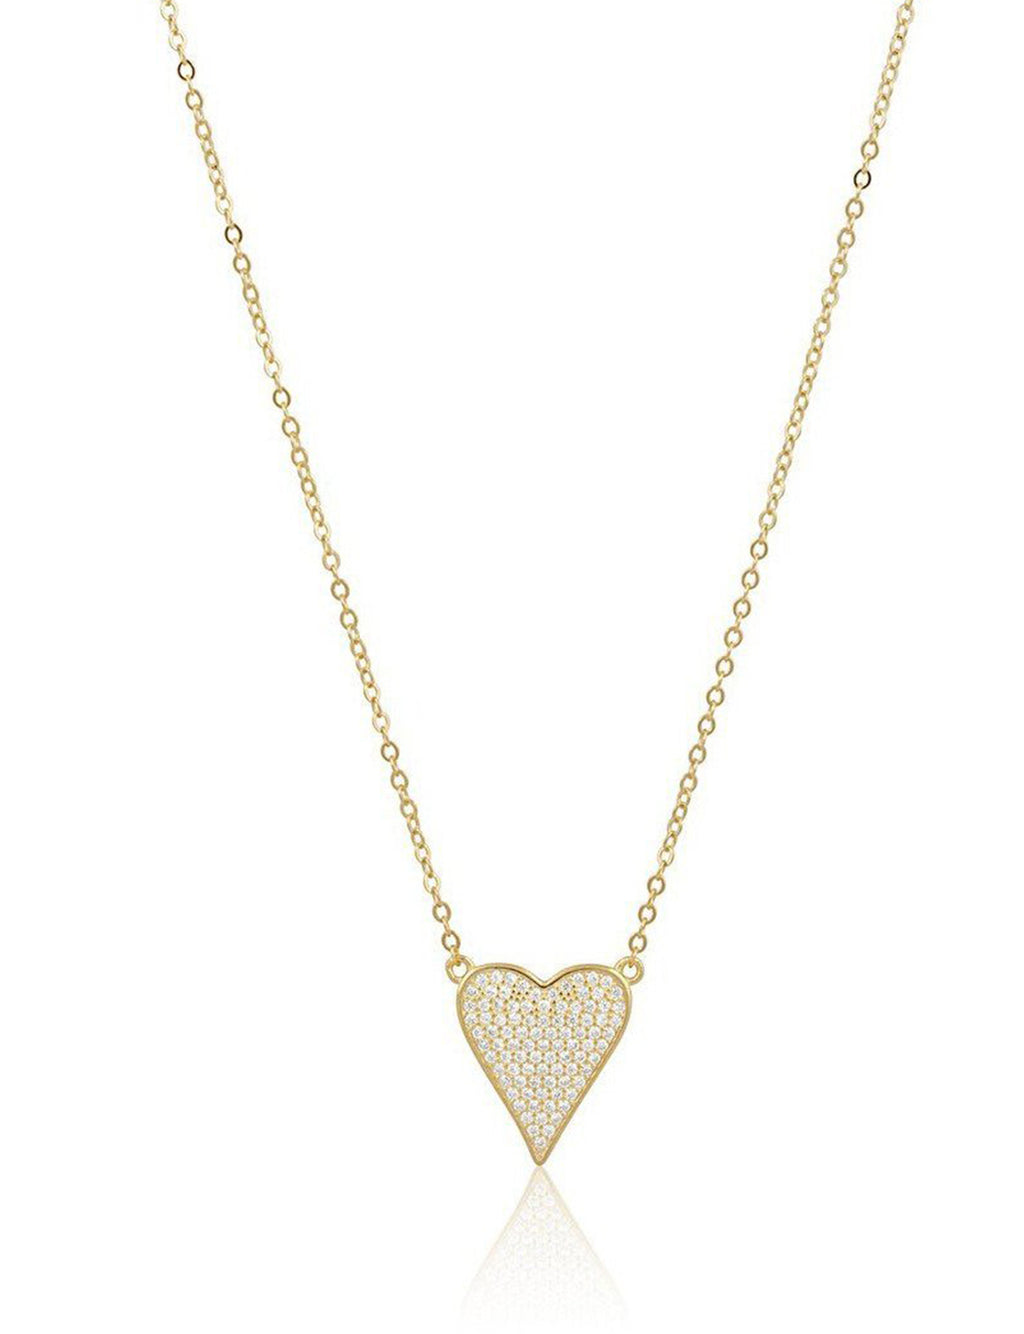 Audrey Heart Necklace in Gold